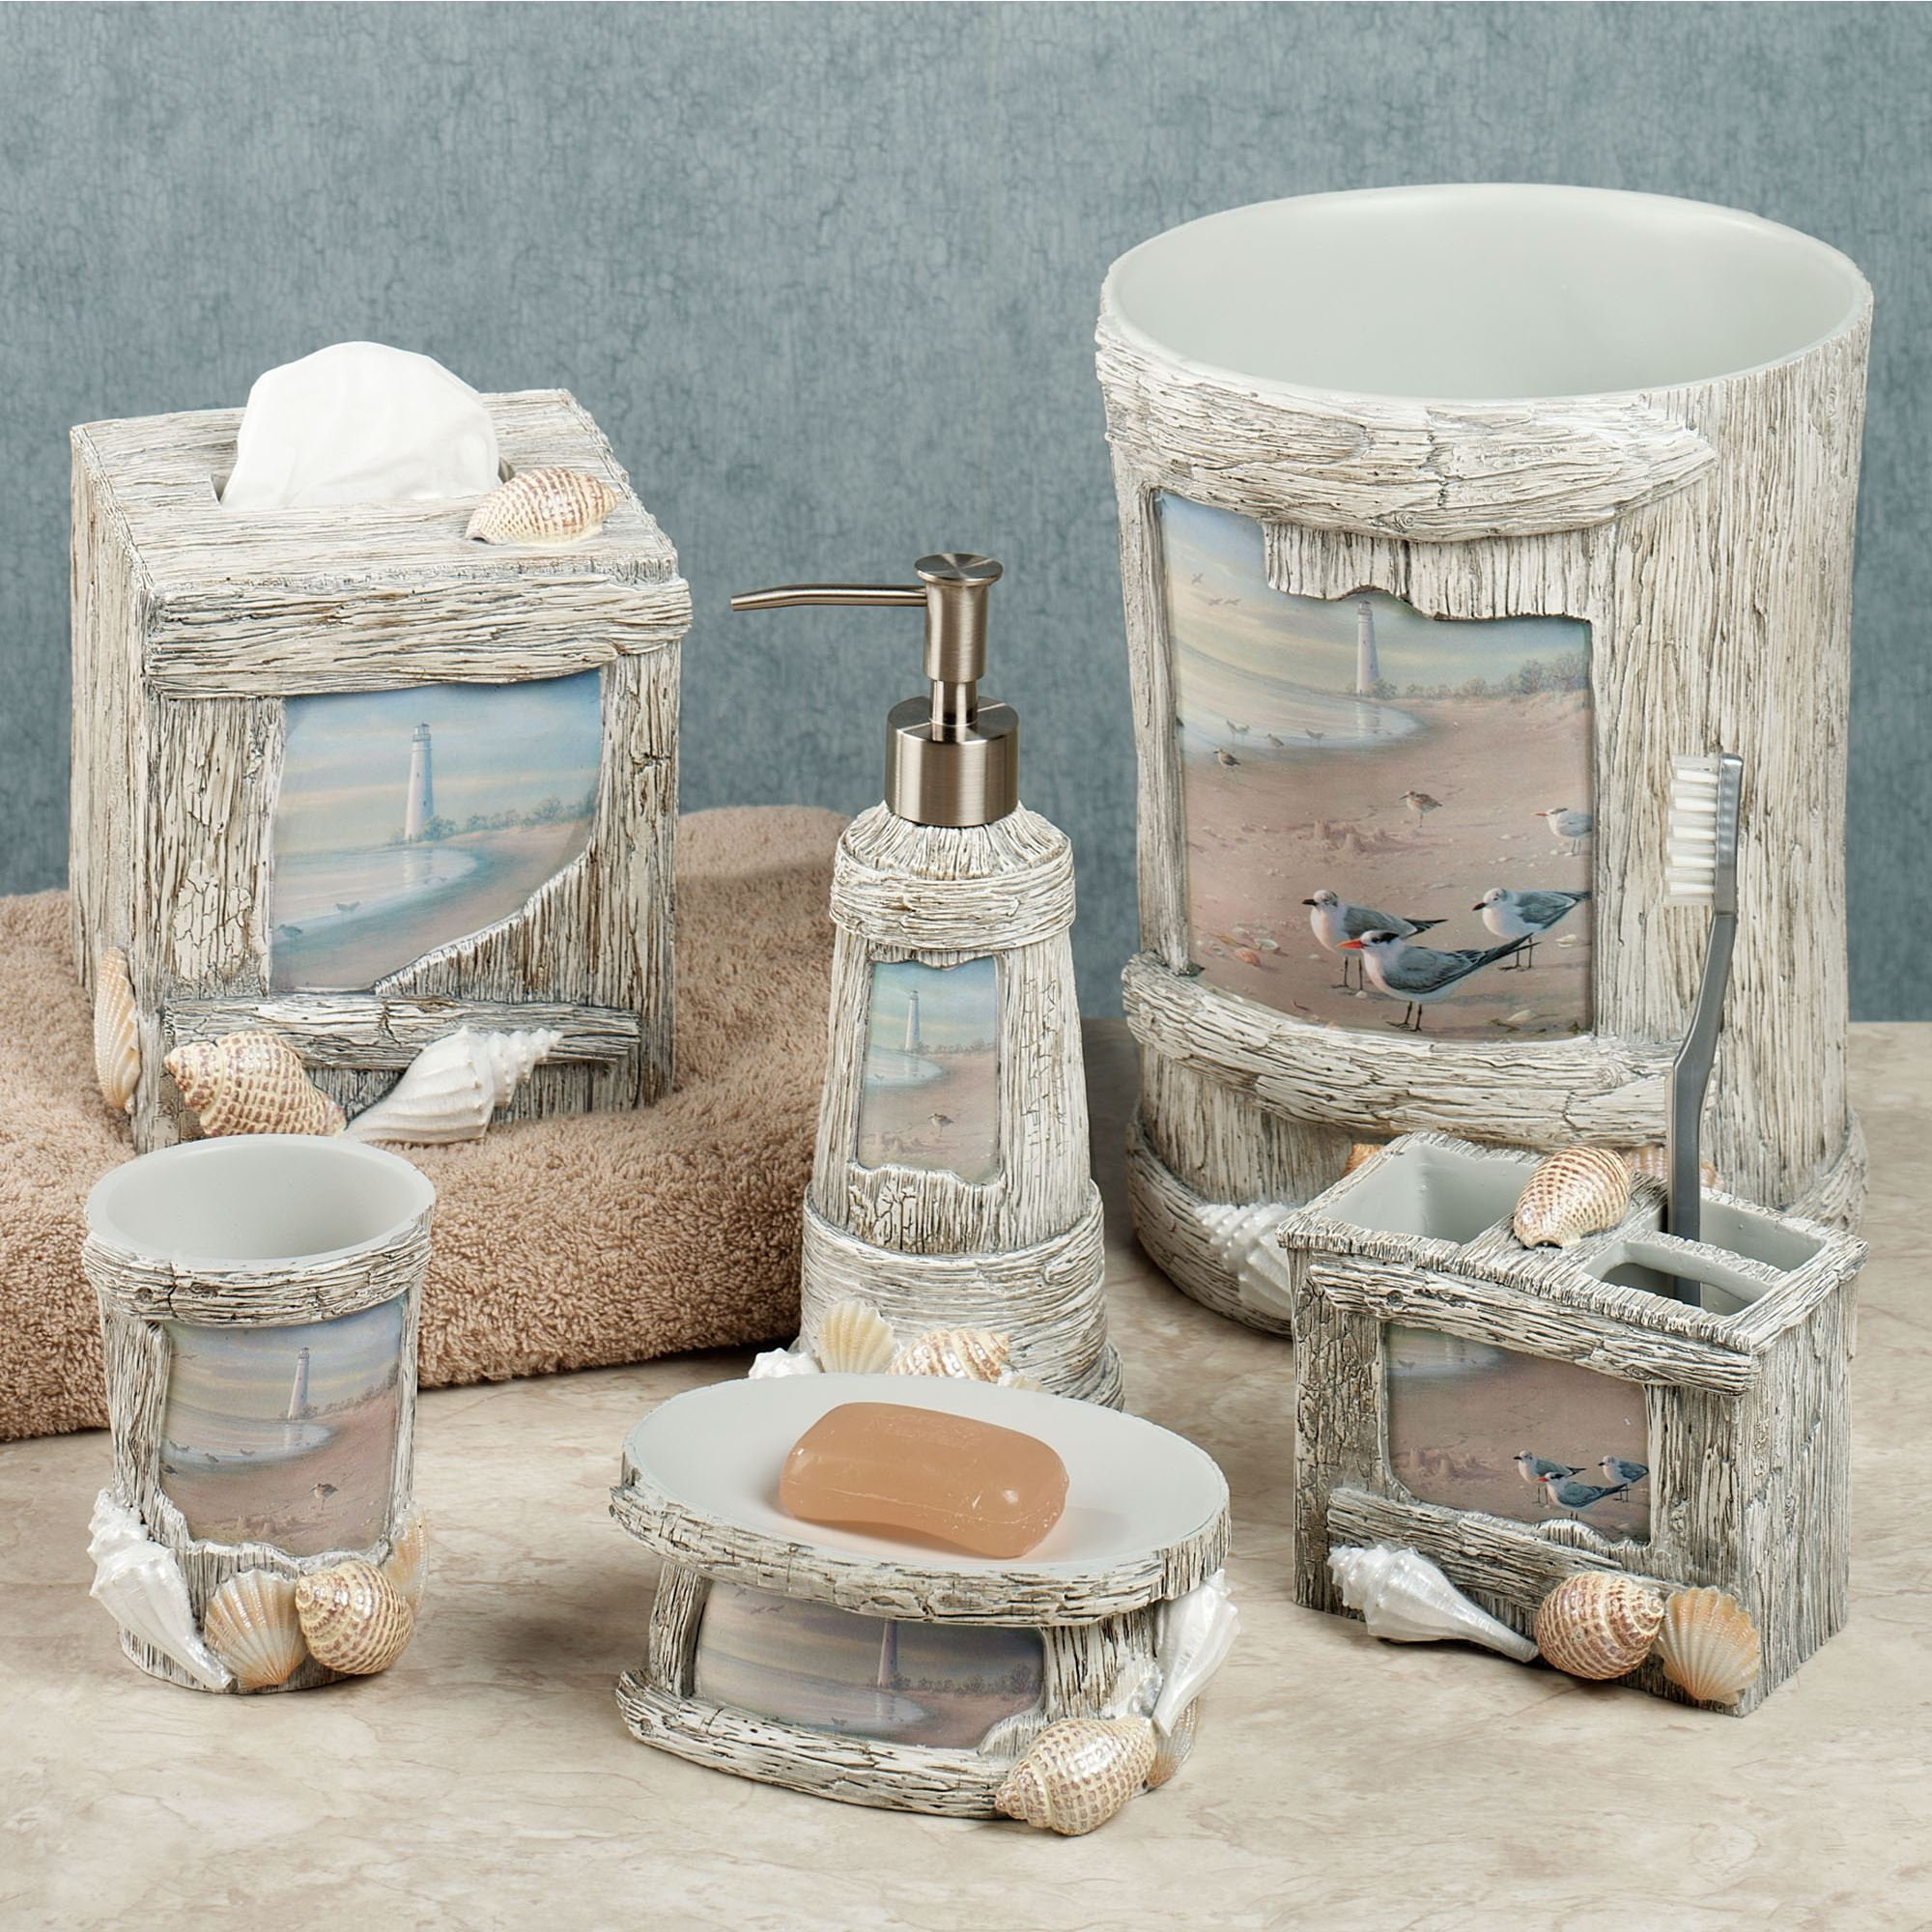 At the beach bath accessories for Bathroom hanging decorations